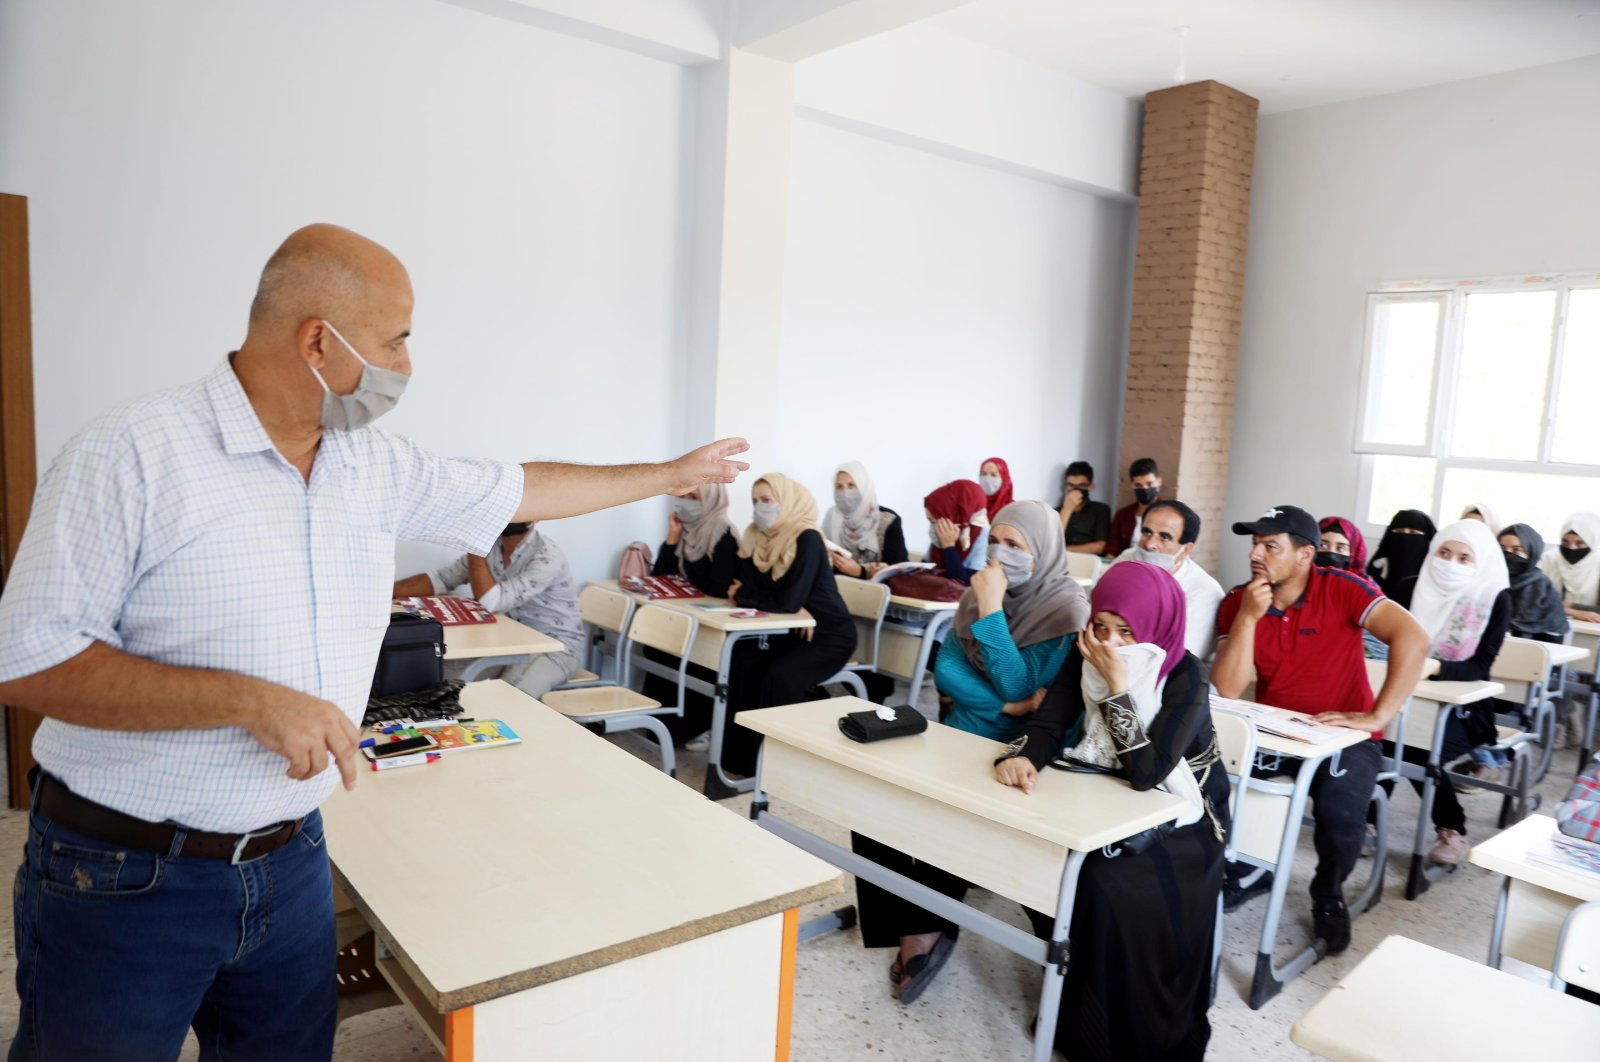 Civilians in the northern Syrian town of Ras al-Ain take Turkish courses in order to learn the language, Sept. 15, 2020. (DHA Photo)